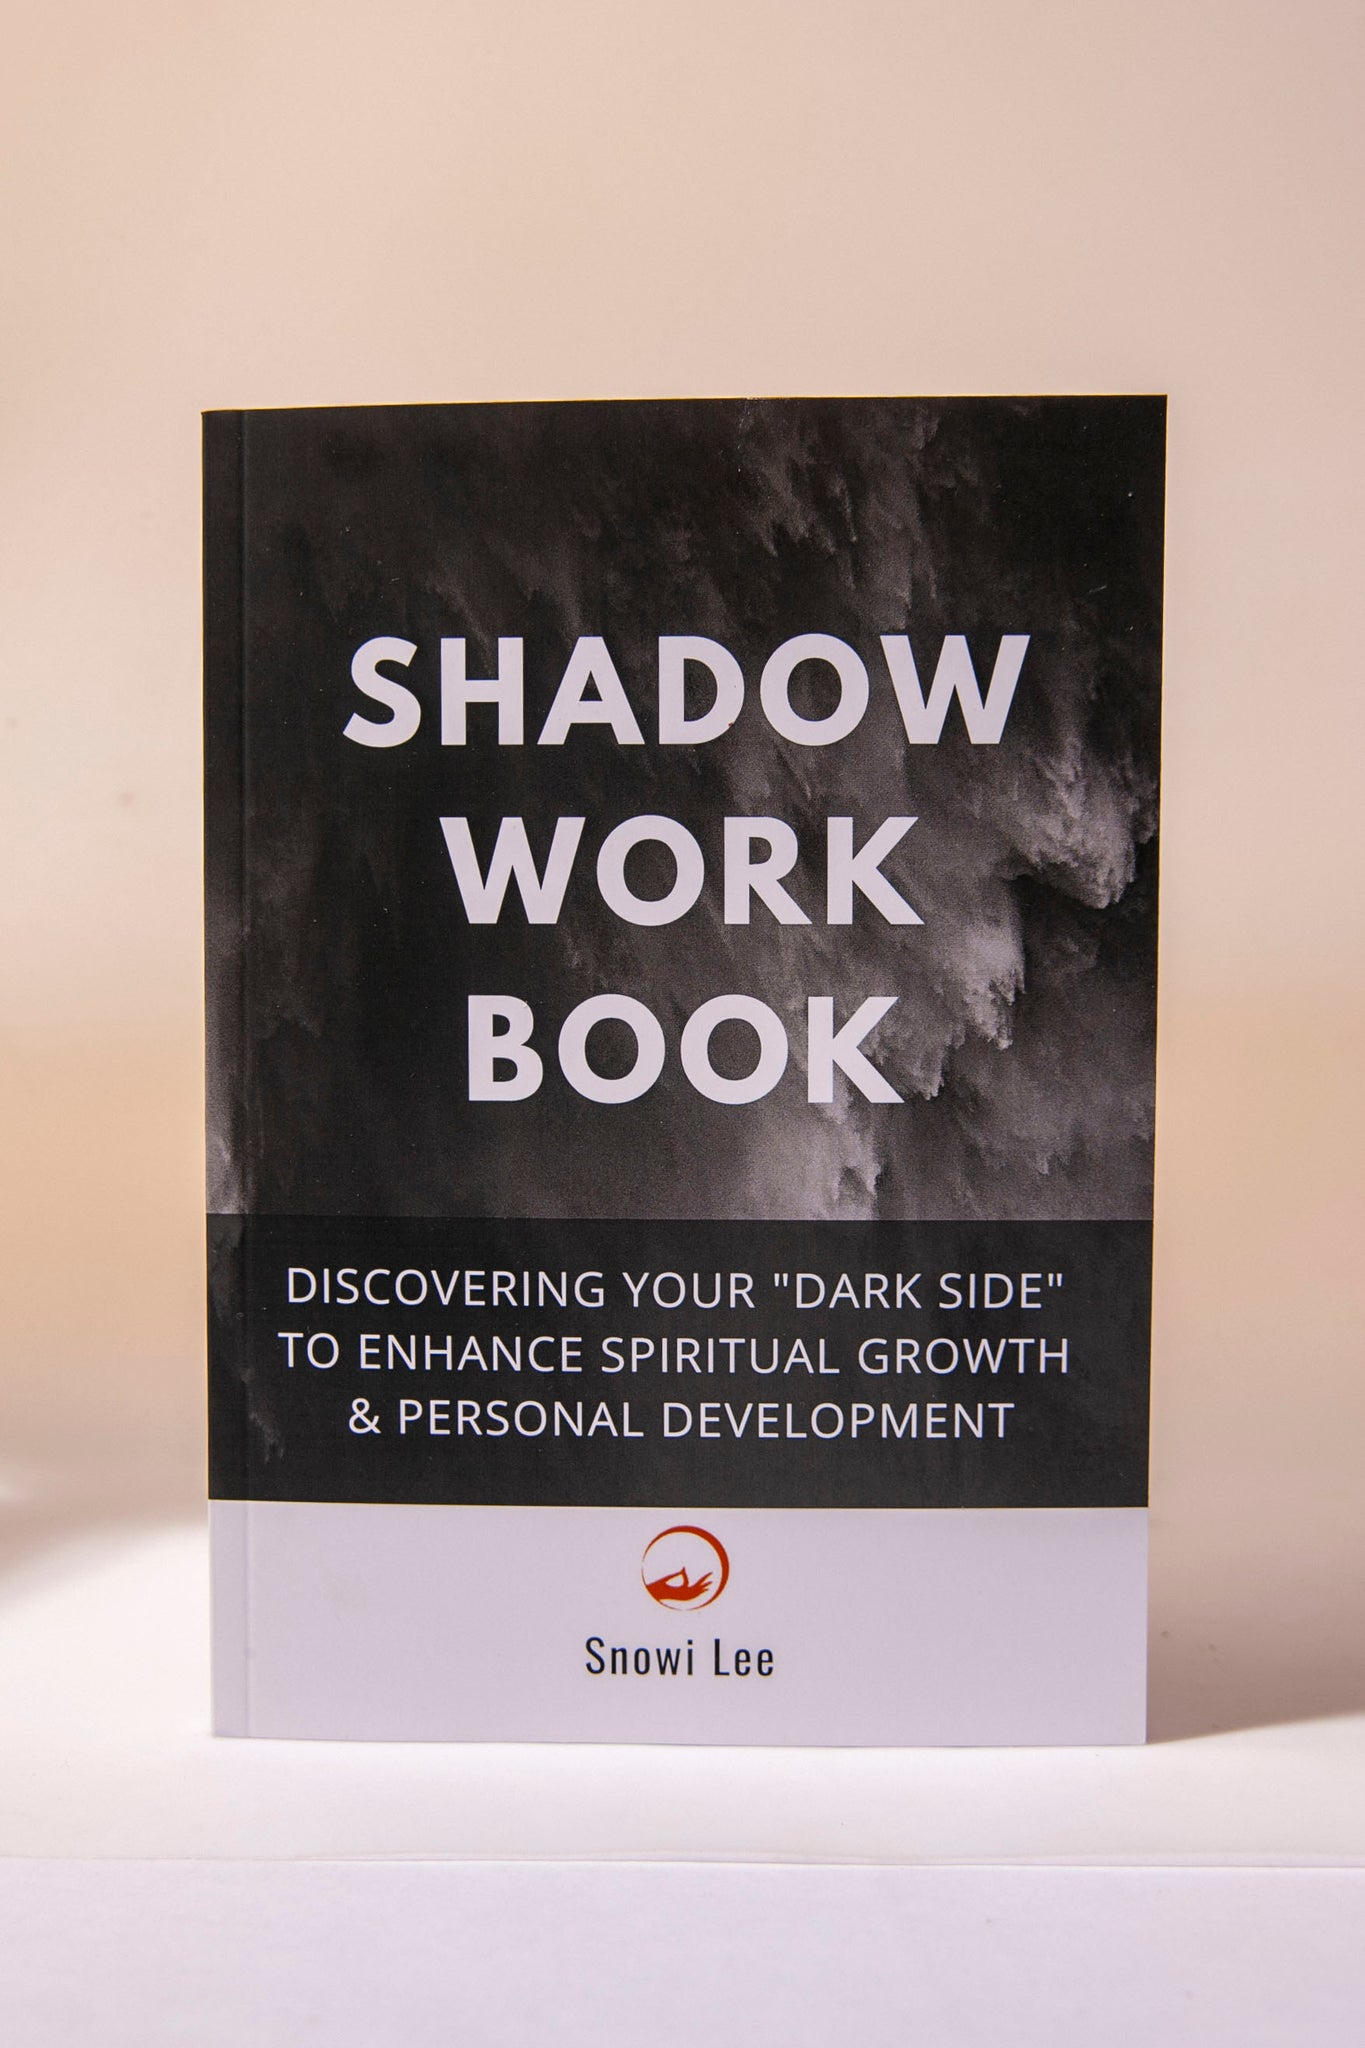 Shadow Workbook by Snowi Lee of Poetic Touch Therapy